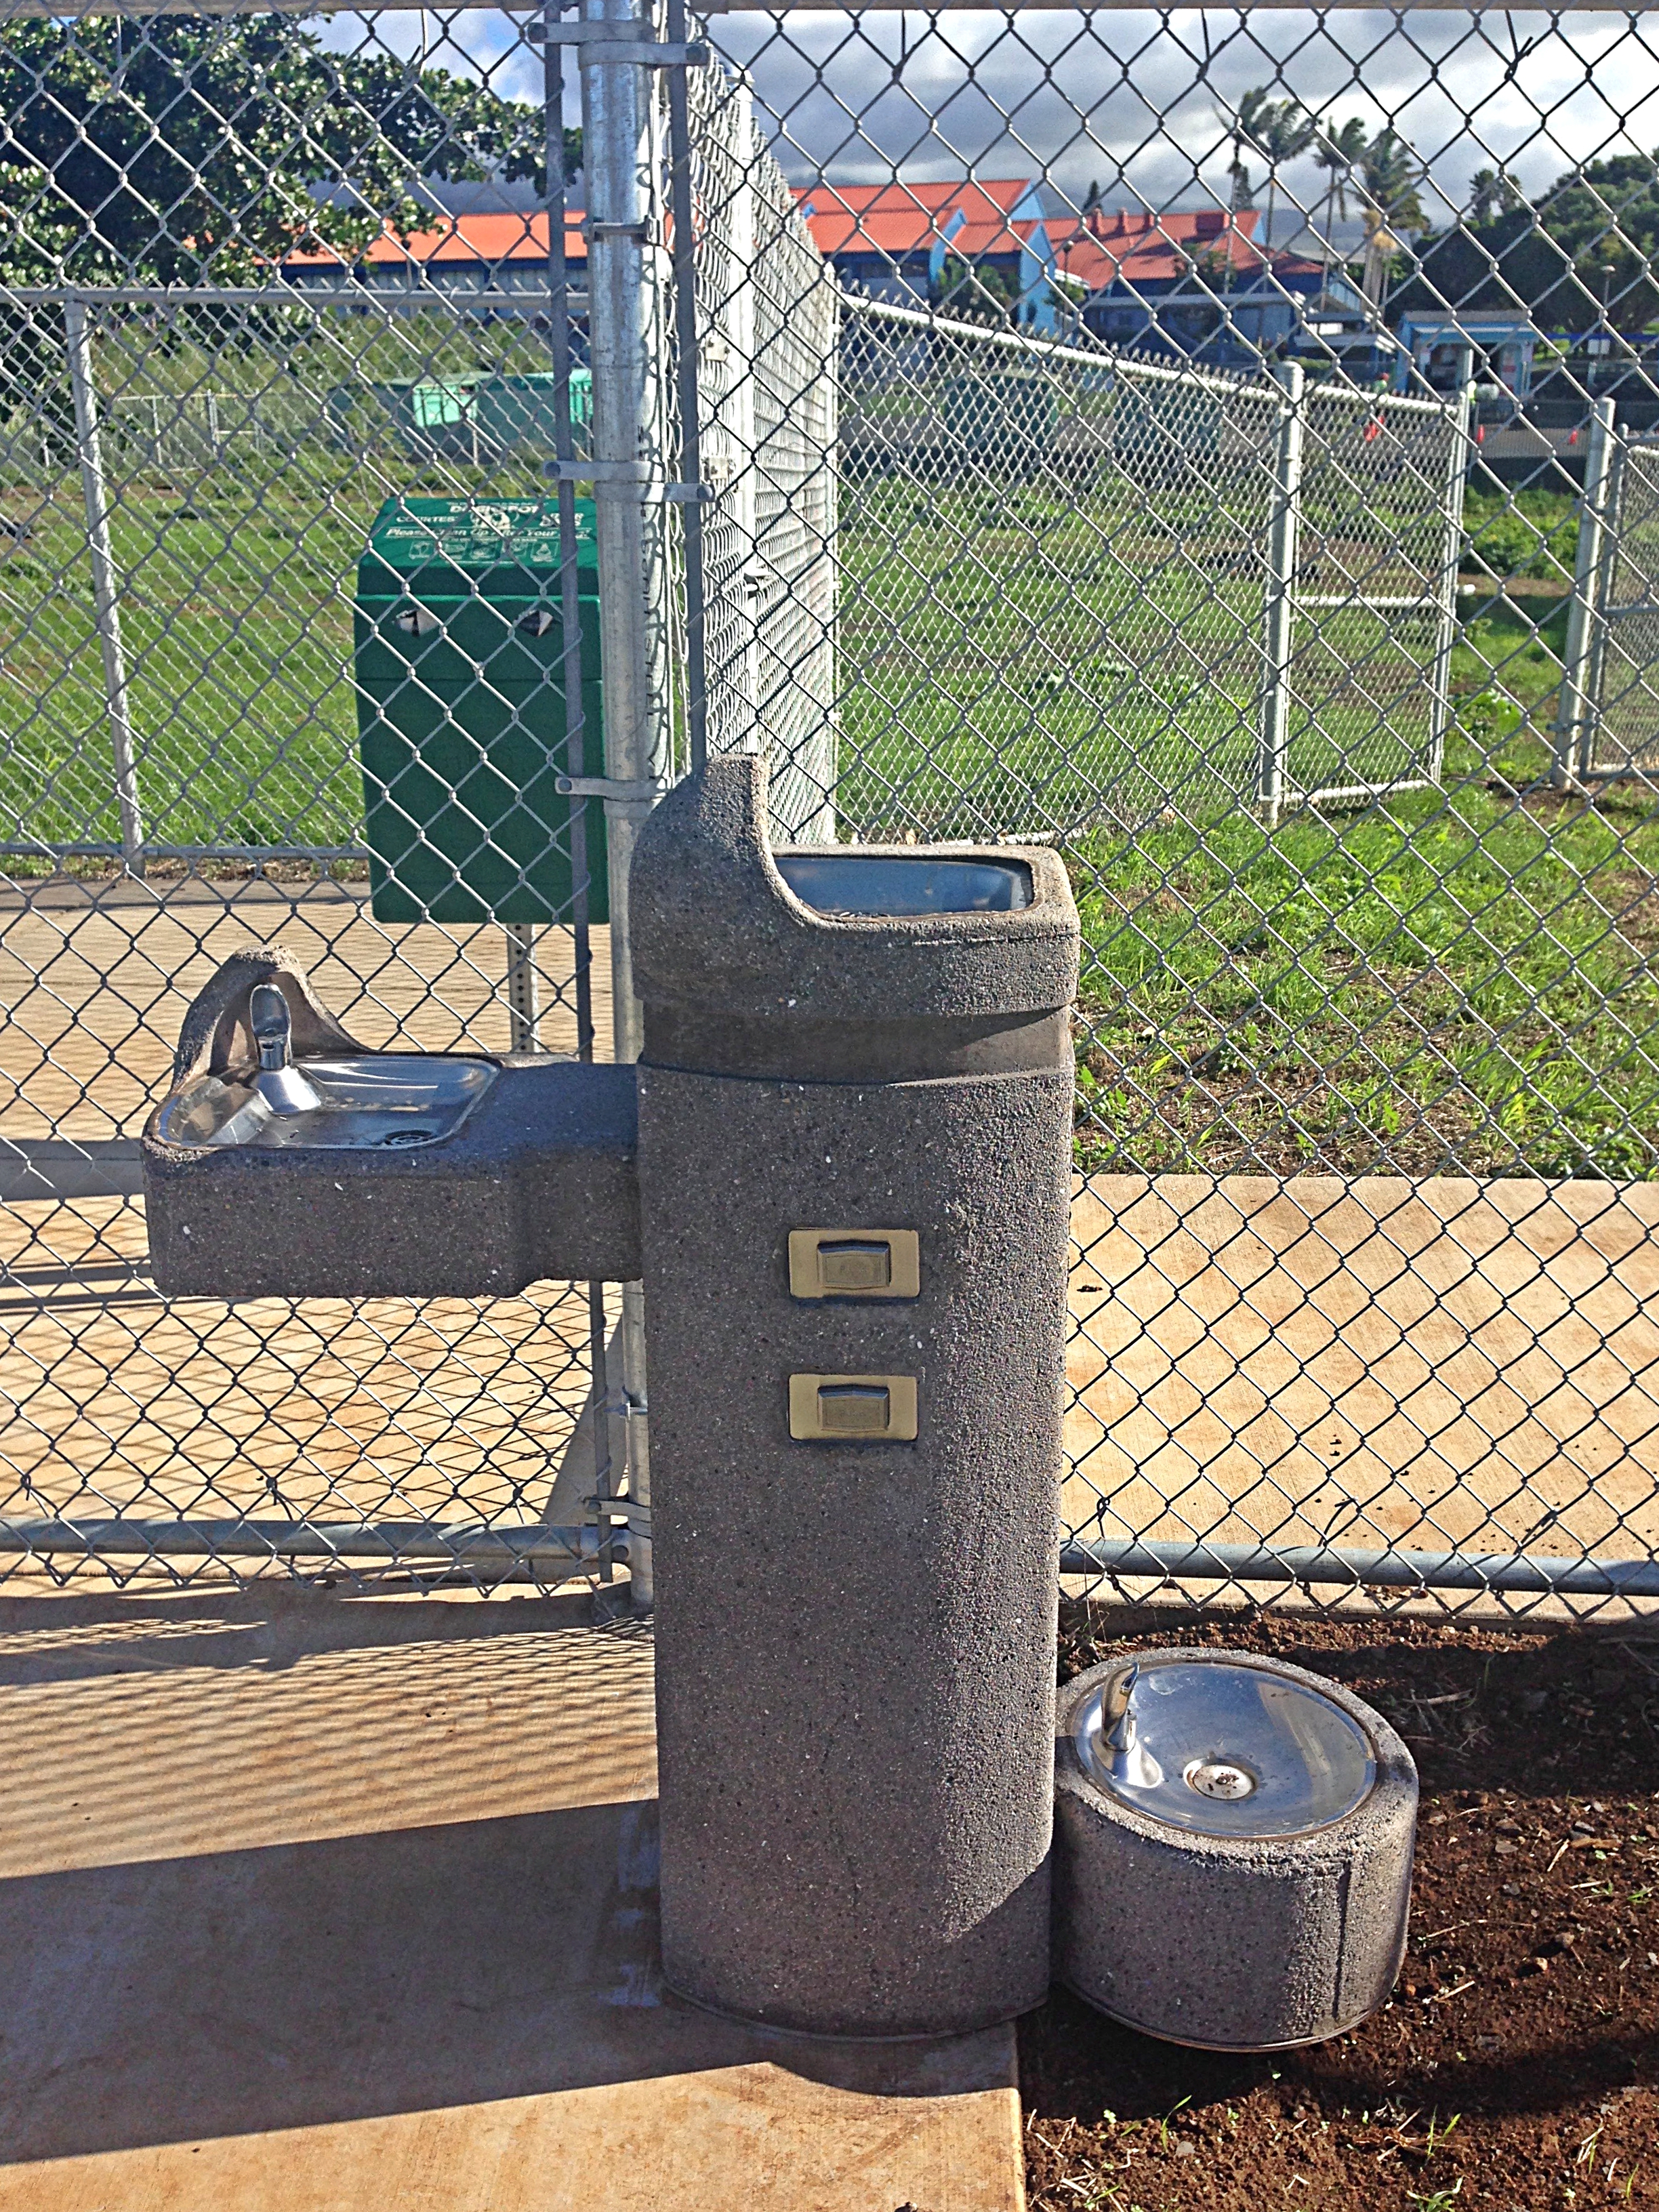 Upcountry Dog Park water fountains for owners and dogs alike. Debra Lordan photo.